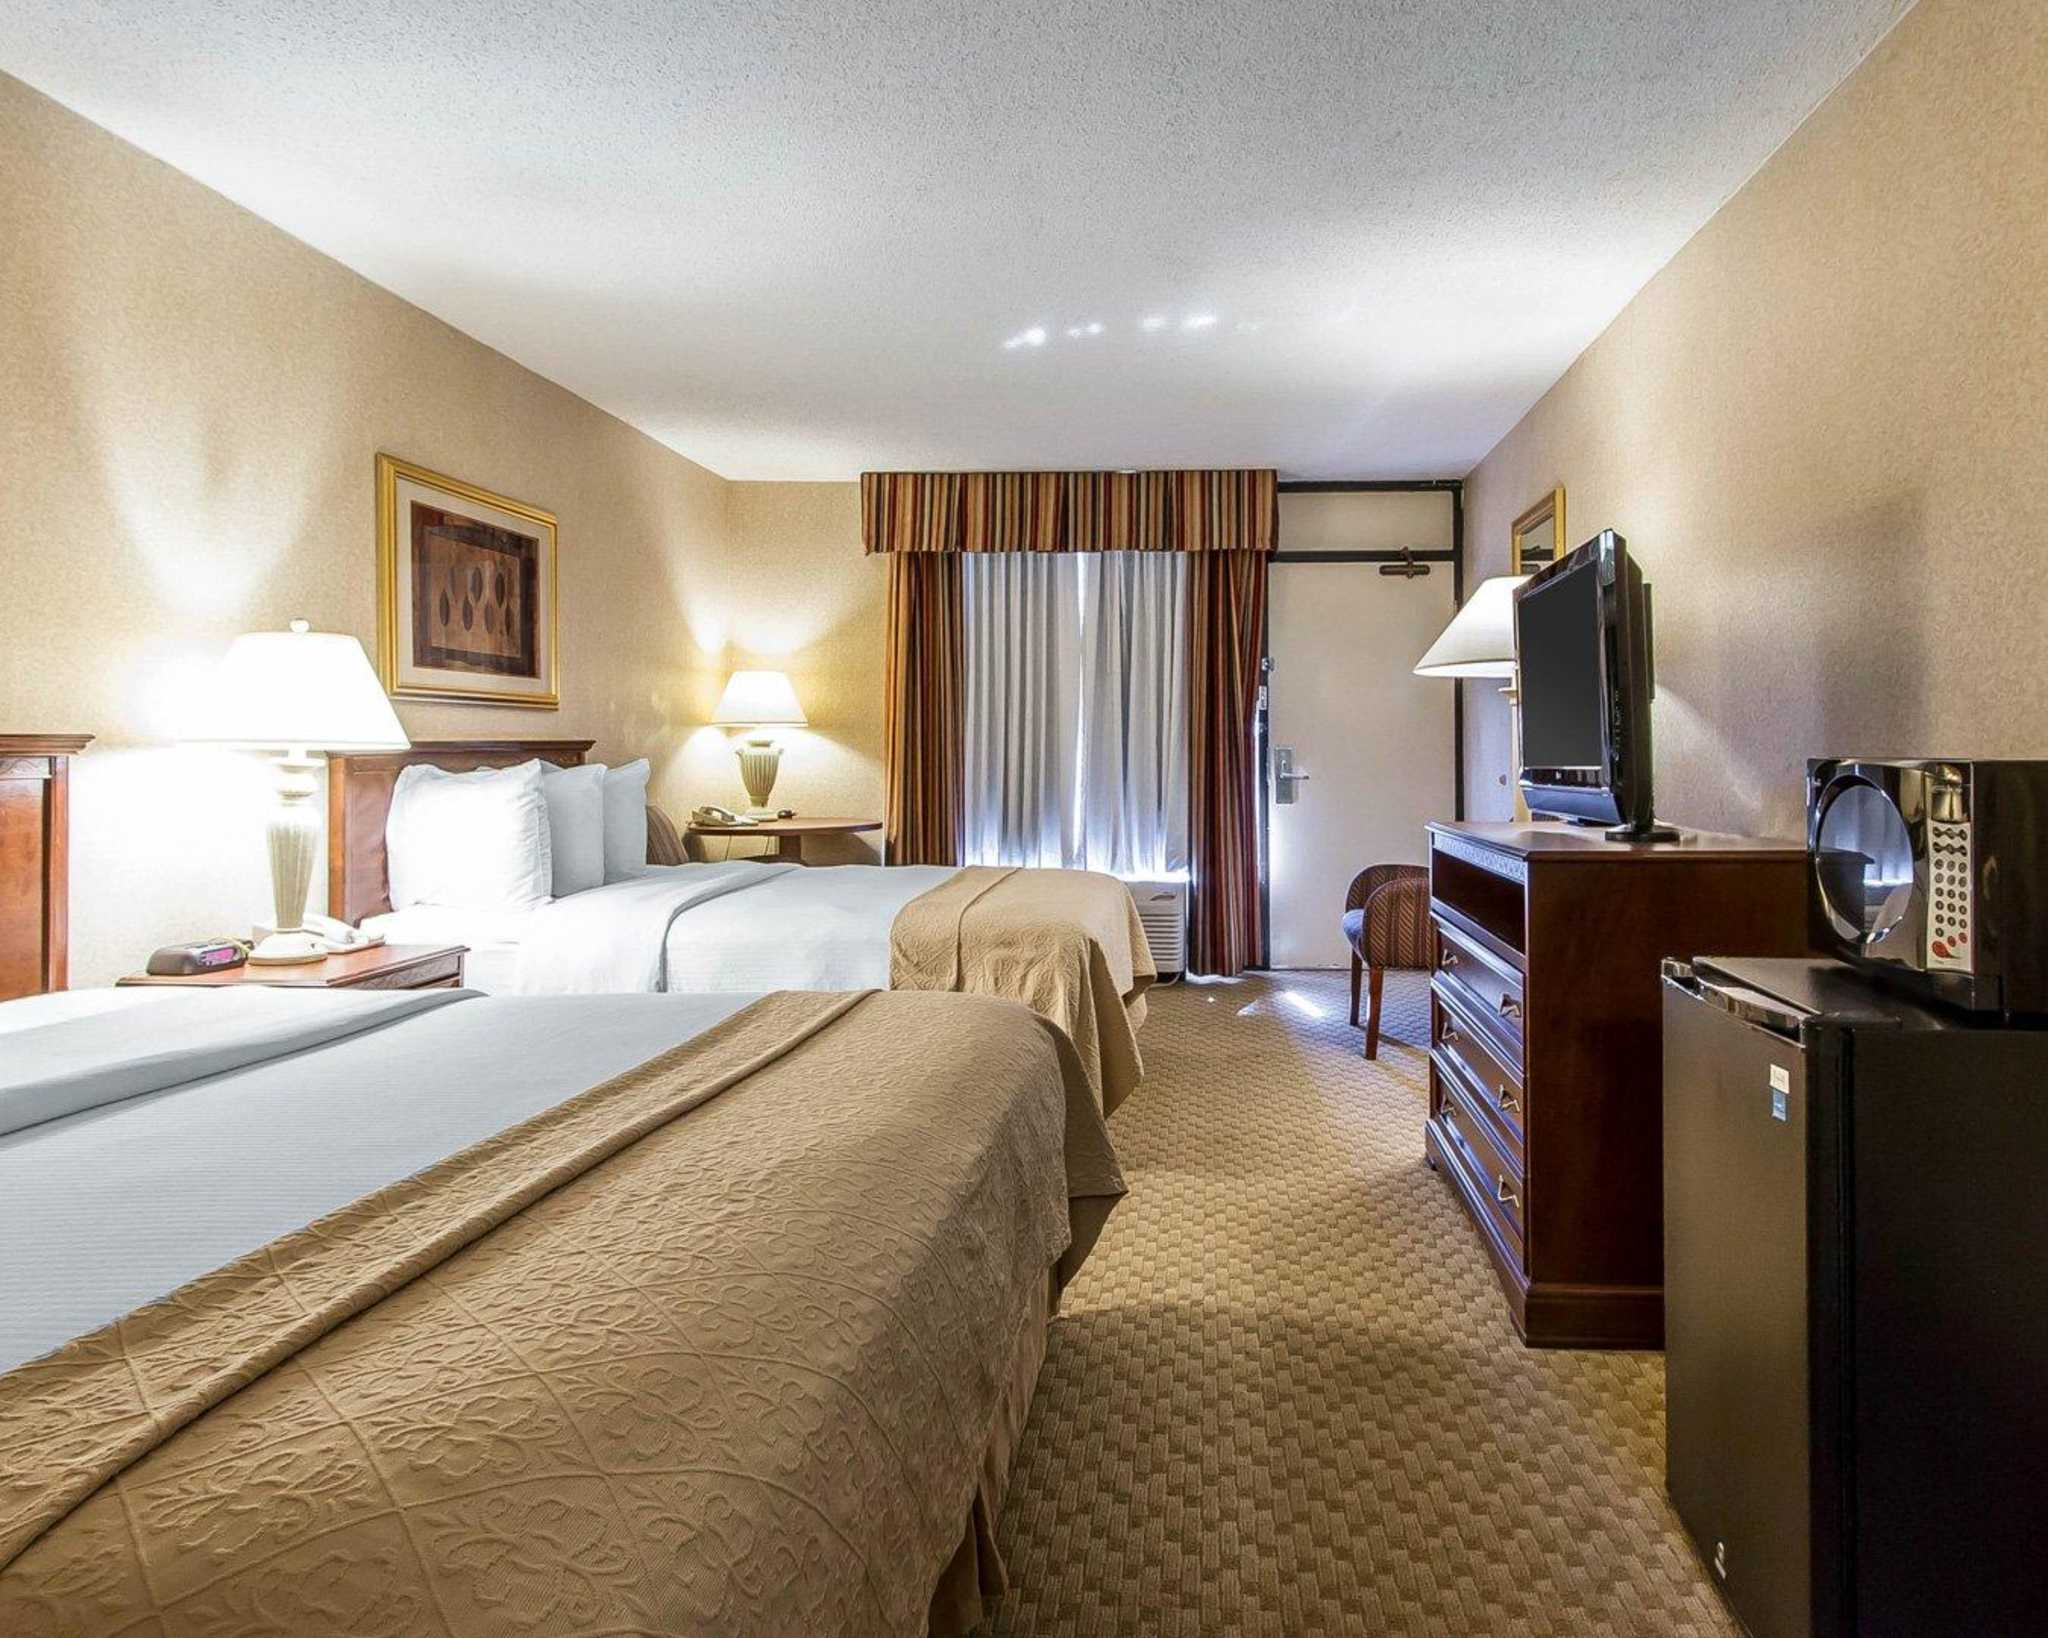 Cleaning Hotel Rooms Clarksville Tn